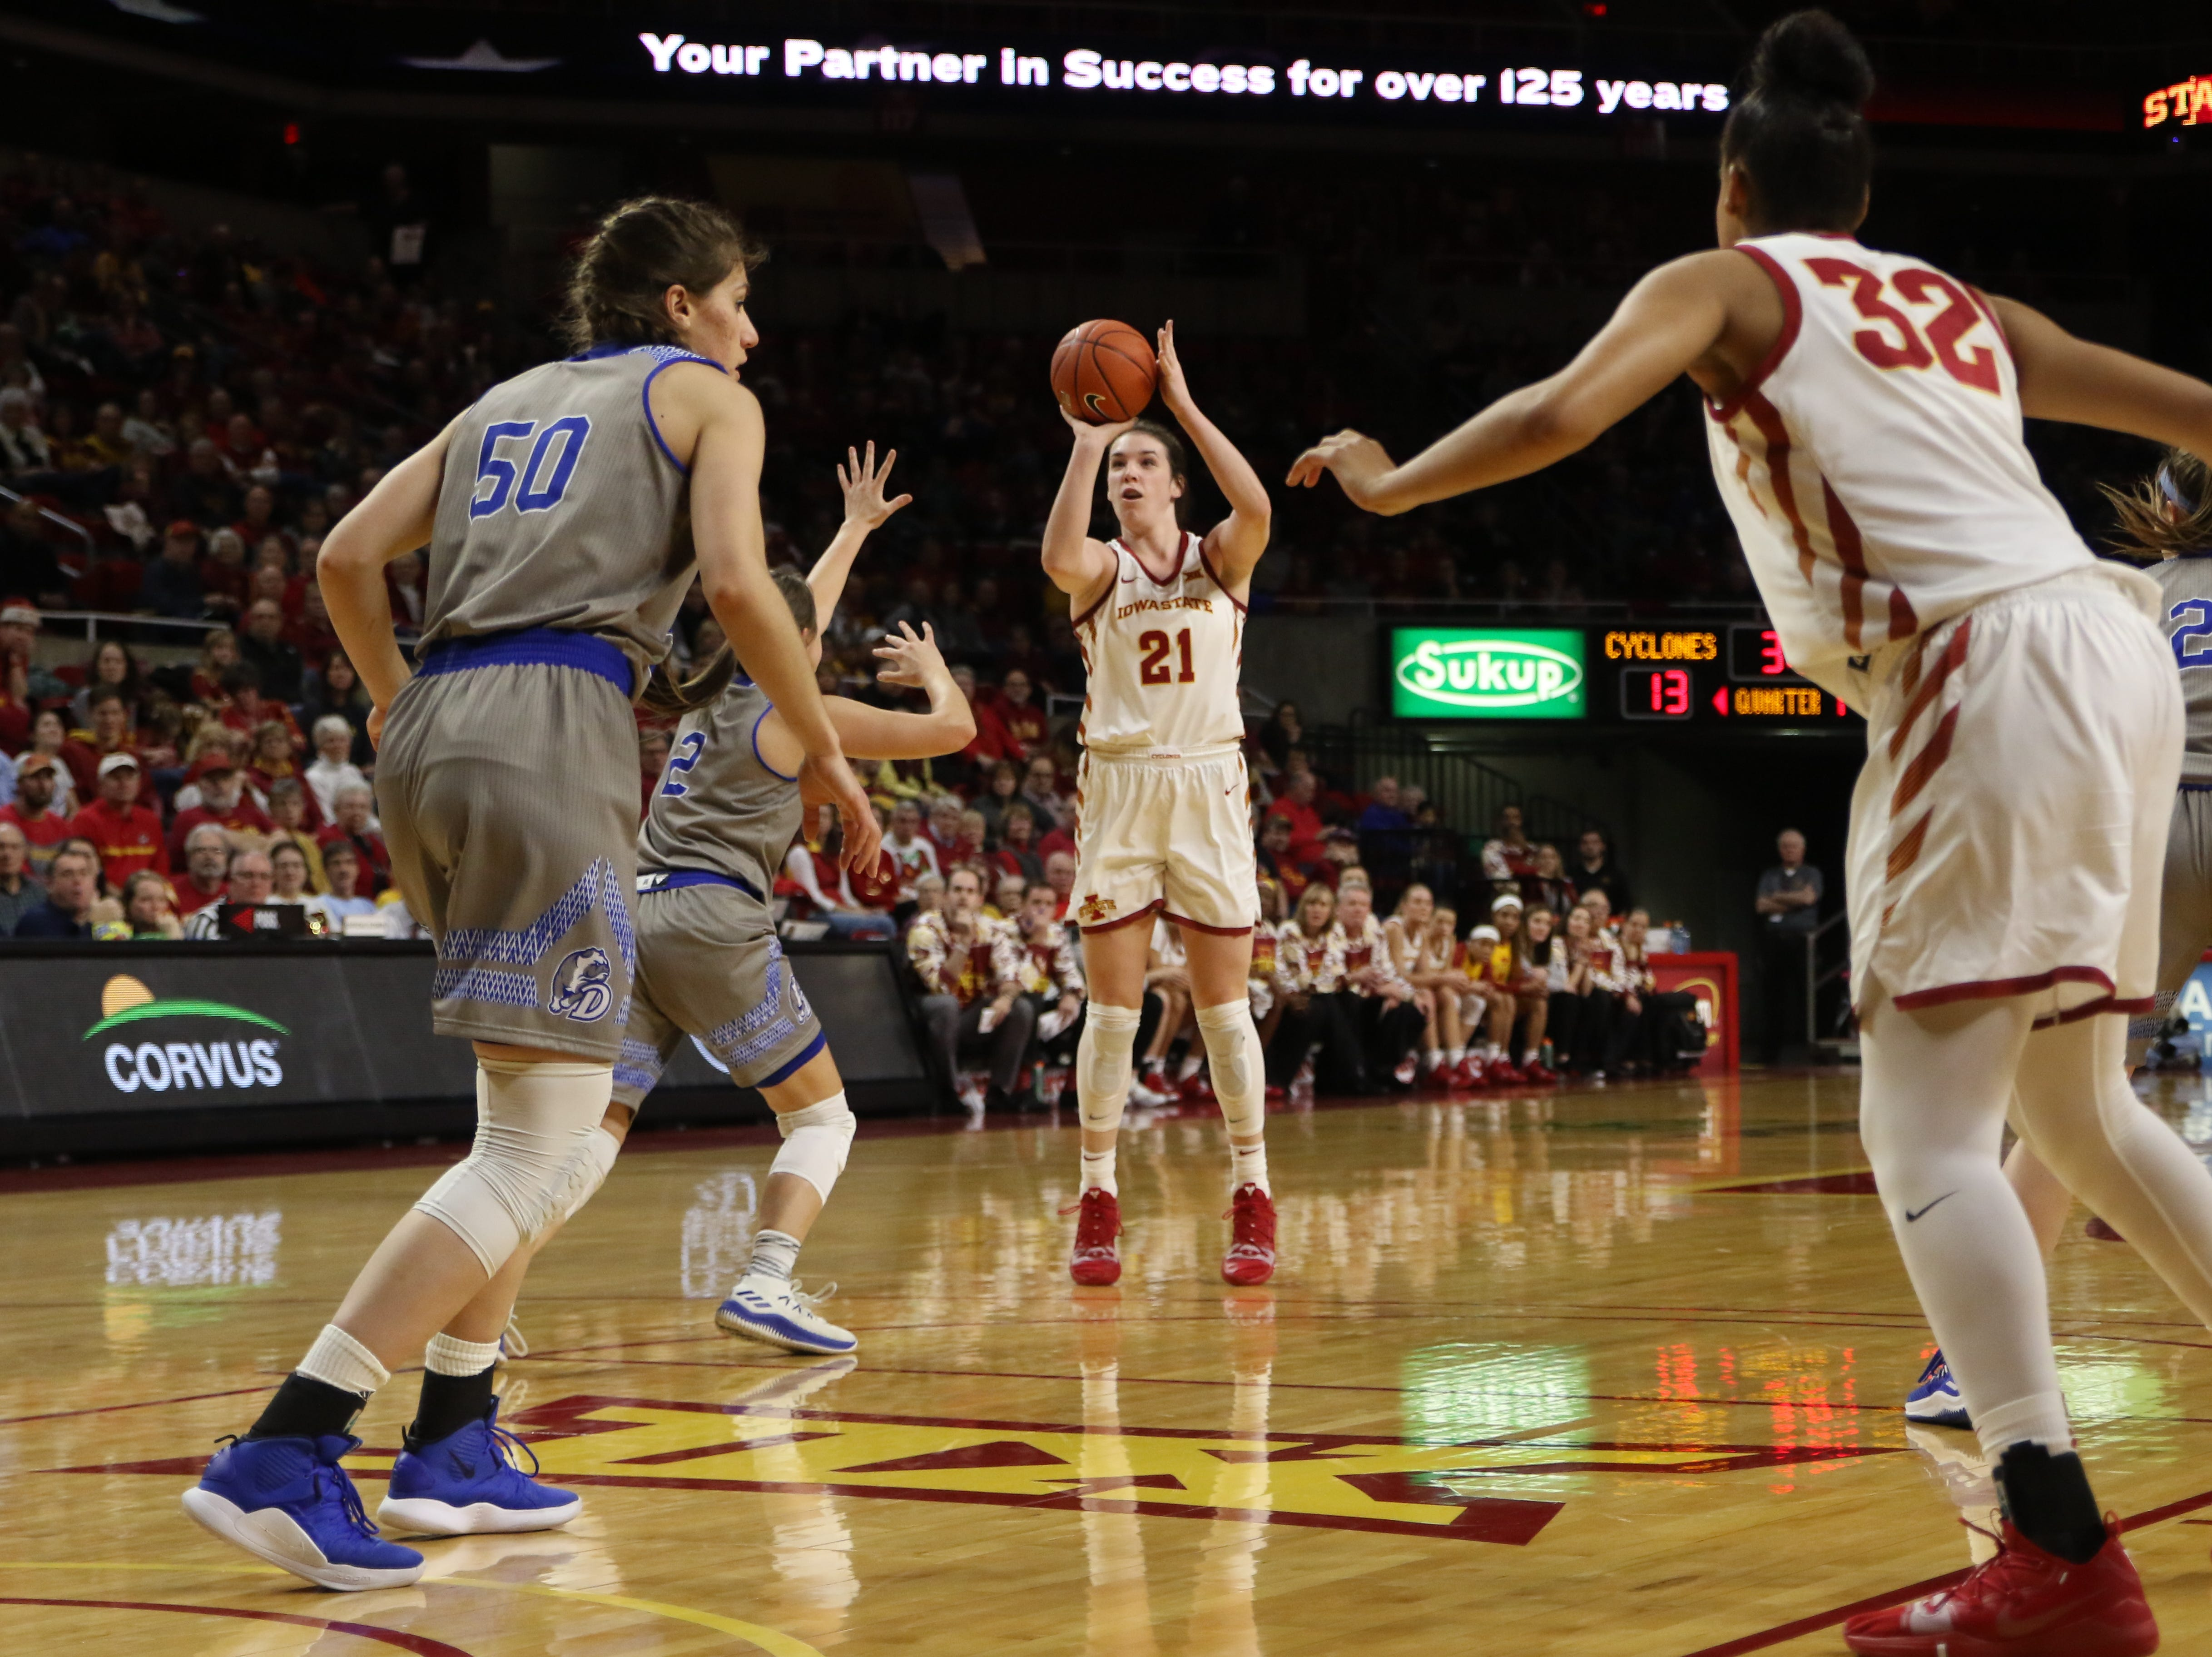 Iowa State senior Bridget Carleton attmepts a three-point shot during the second quarter against Drake on Sunday. Carleton provided a spark for the Cyclones who began the game shooting poorly from beyond the three-point line. The Cyclones won, 86-81.